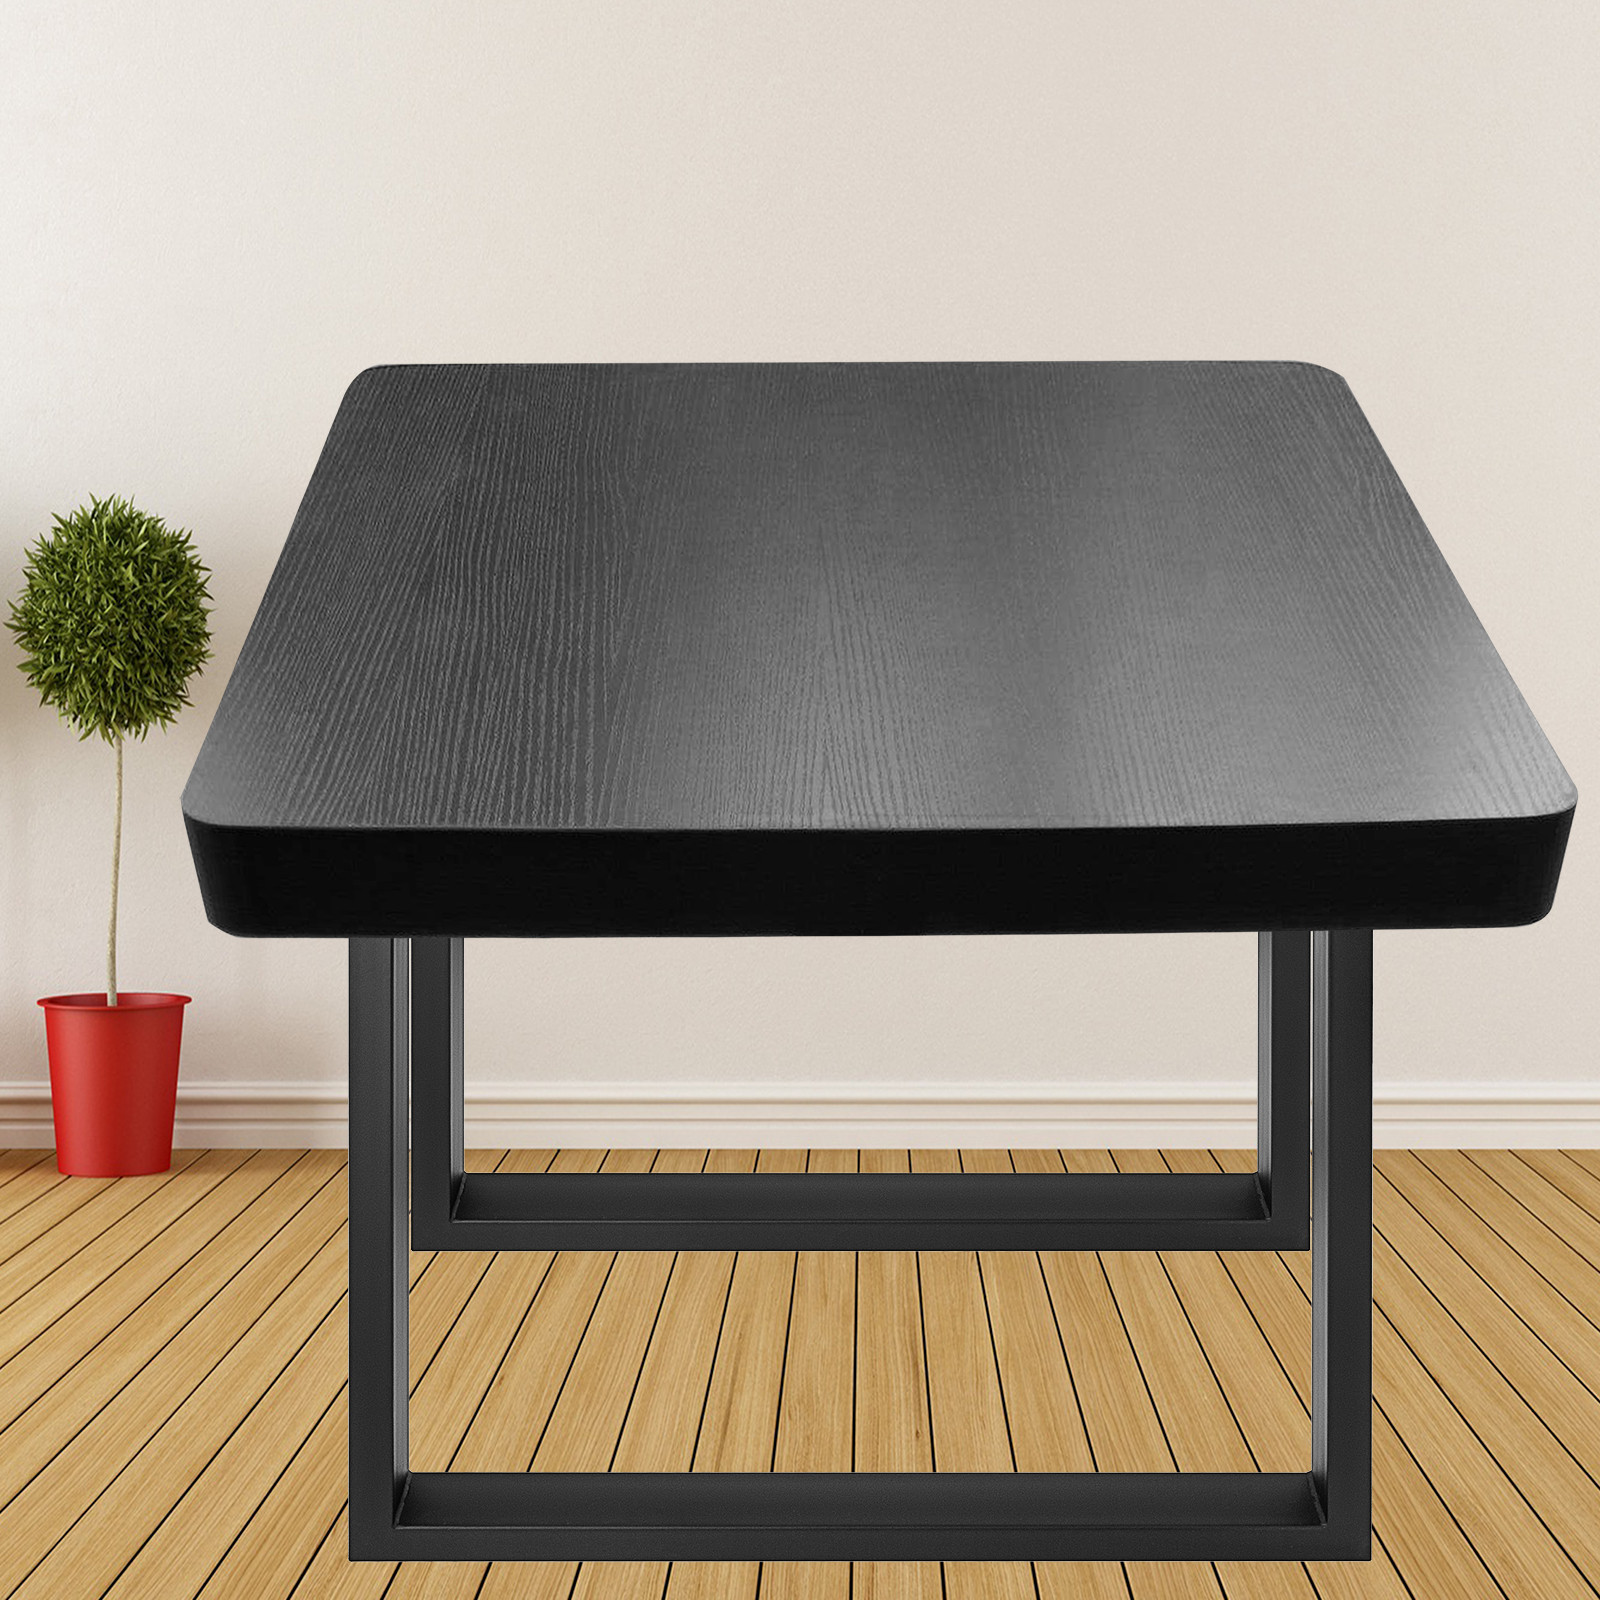 2X-Table-Legs-Black-Dining-Table-Leg-Heavy-Duty-Computer-Desk-Legs-Rectangle thumbnail 83